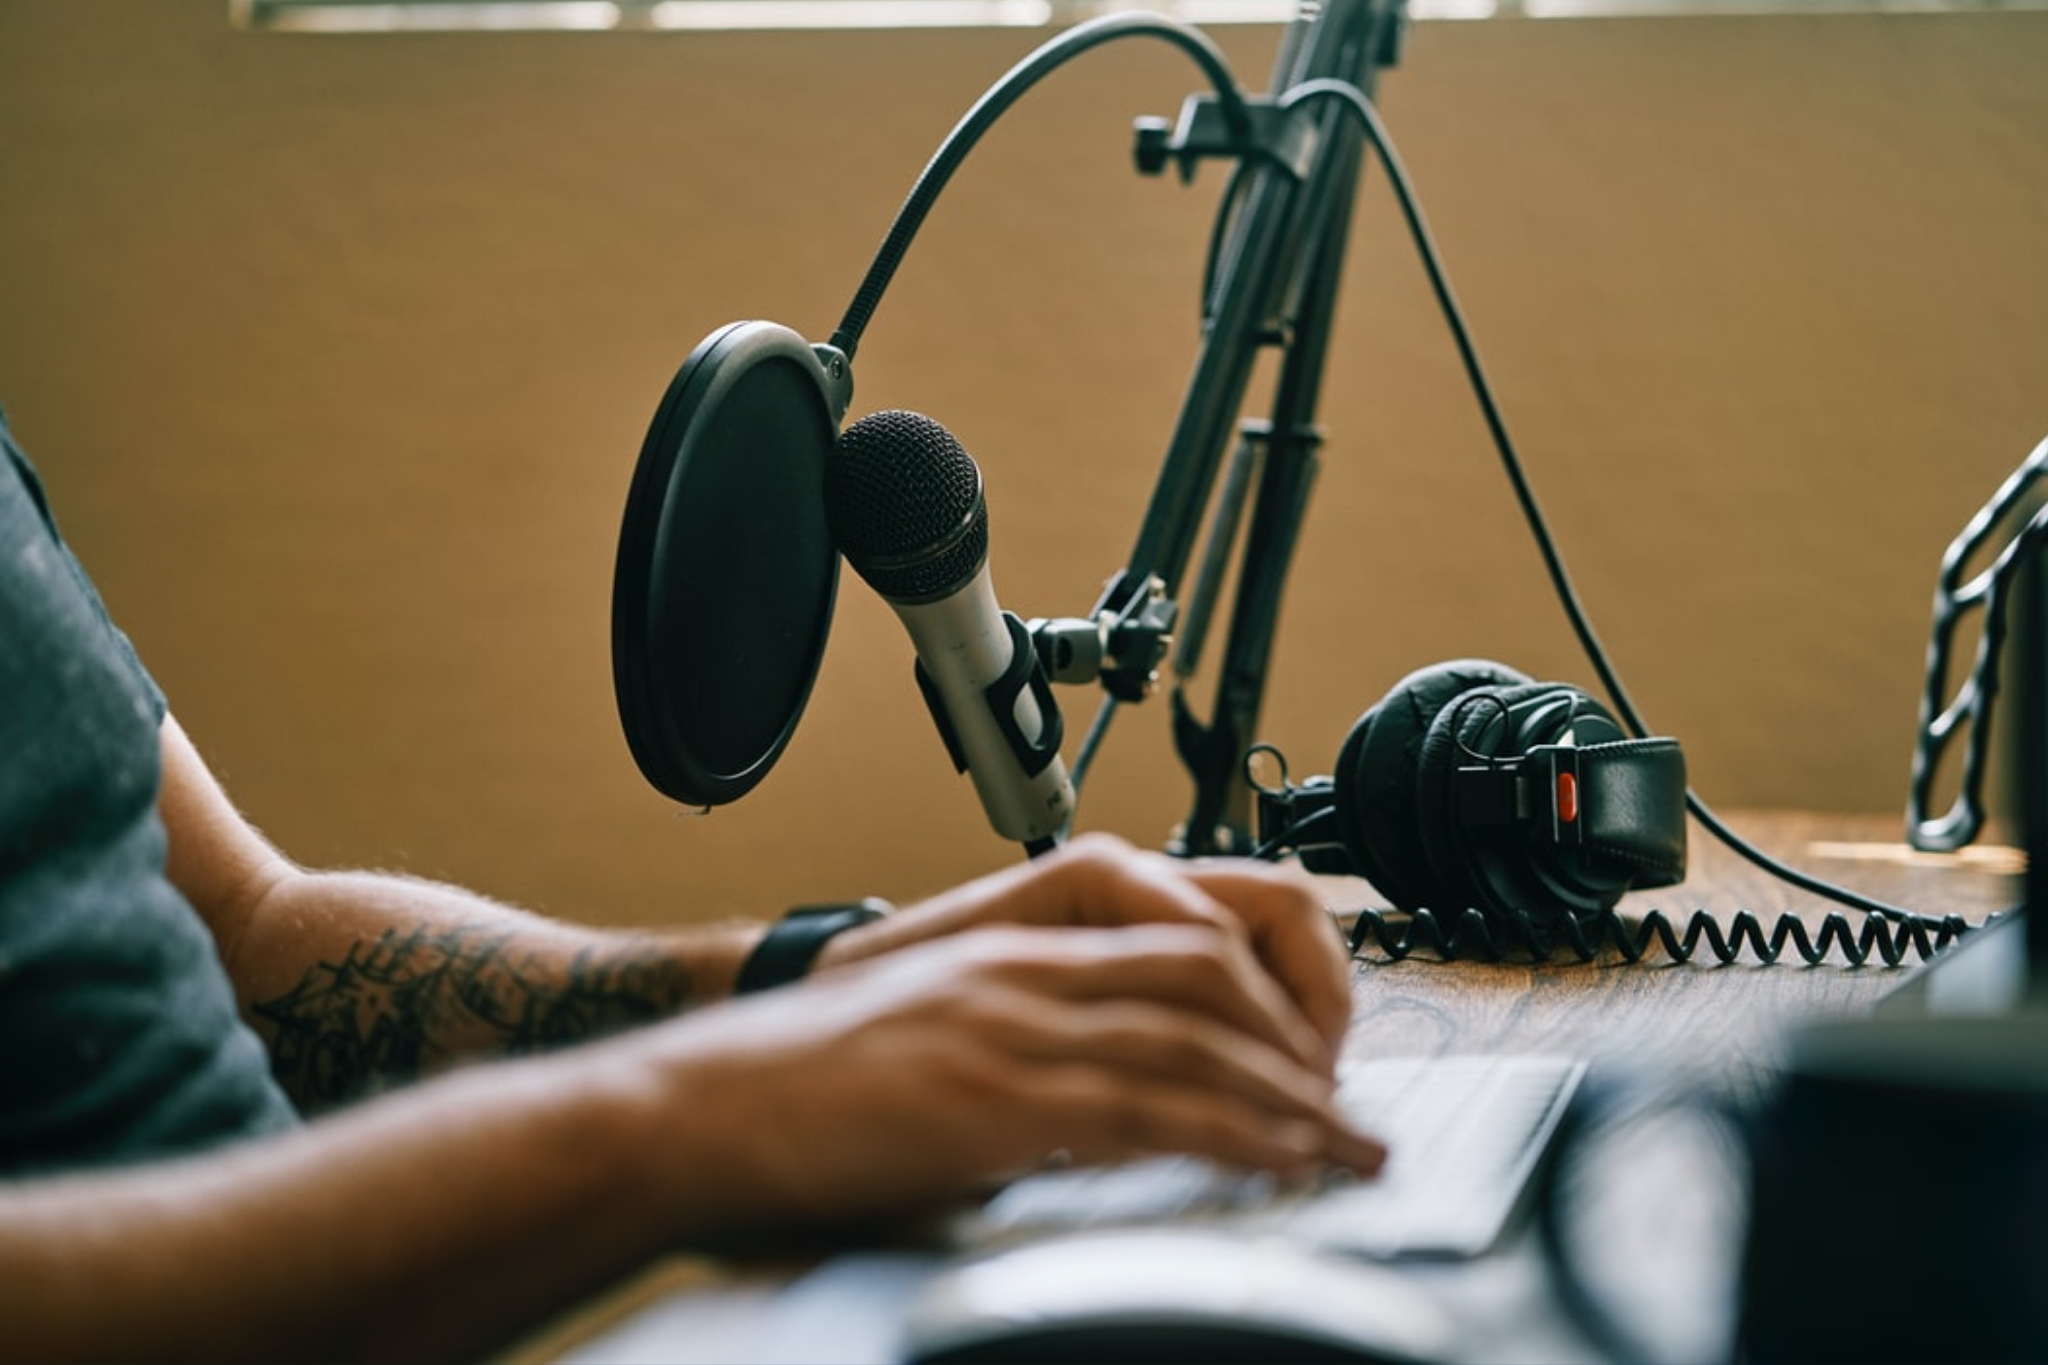 podcaster recording a show with microphone in front